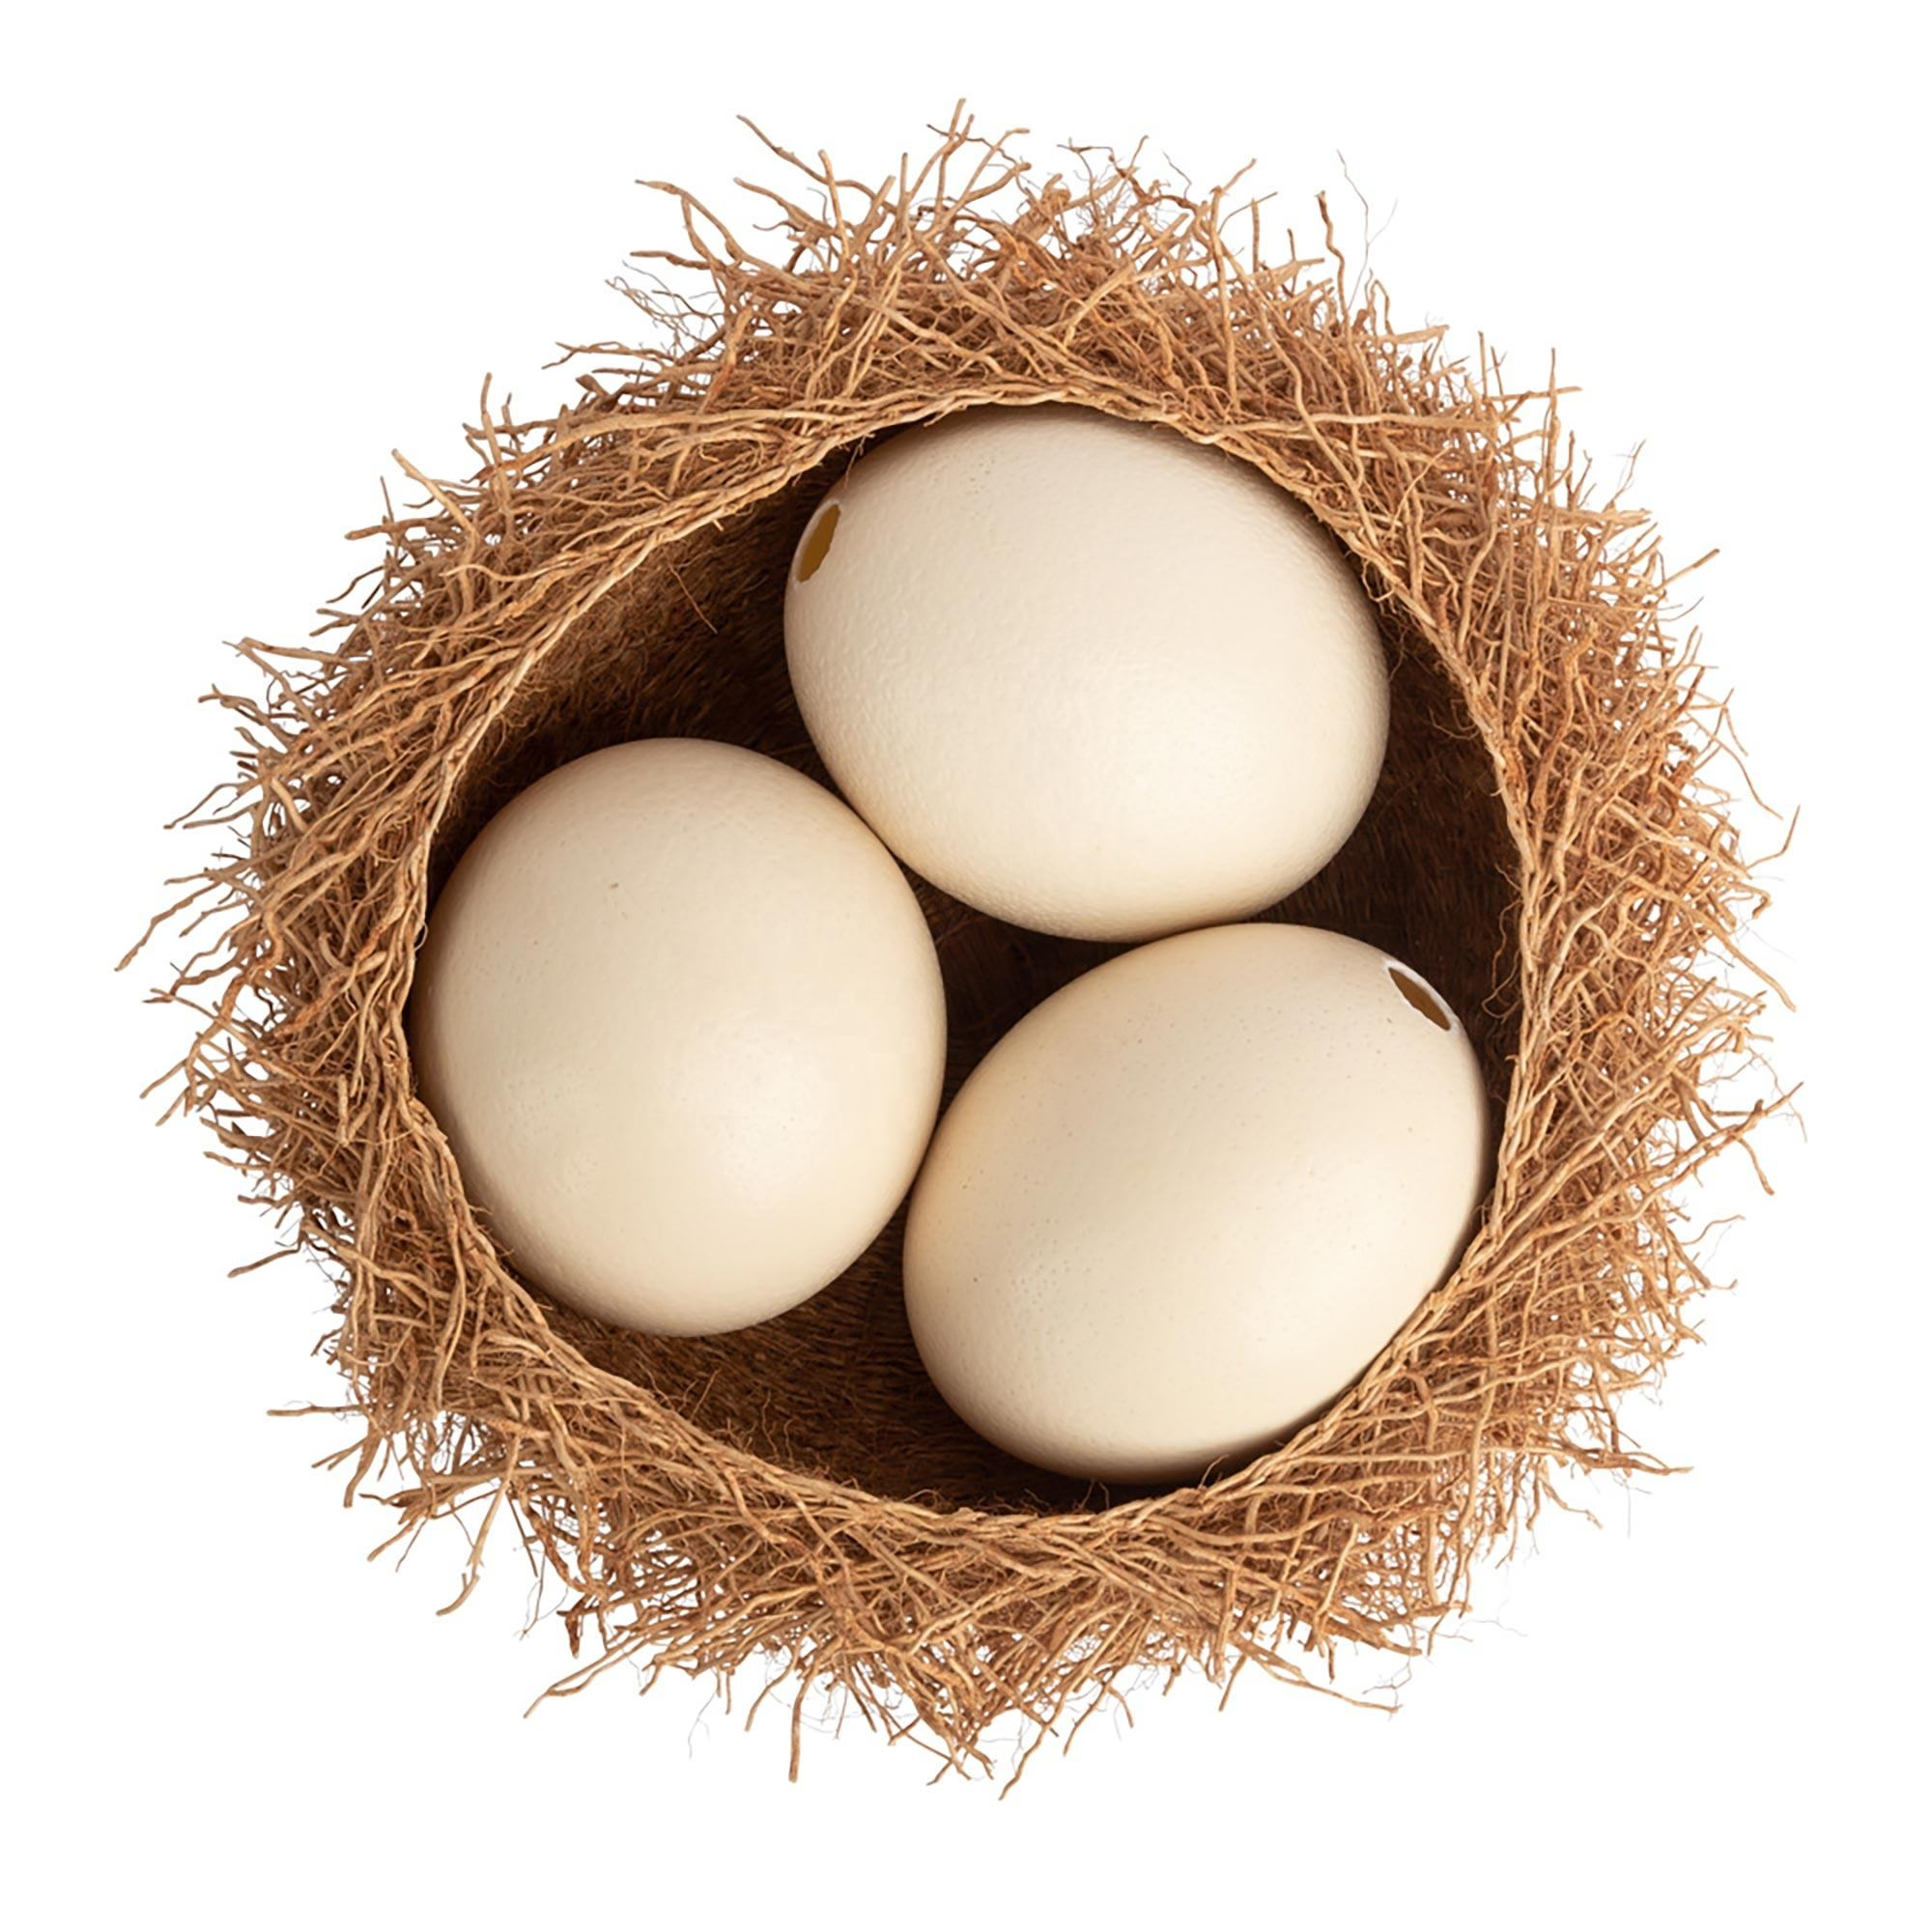 Fresh Ostrich, Emu and Rhea Eggs for Eating or Hatching